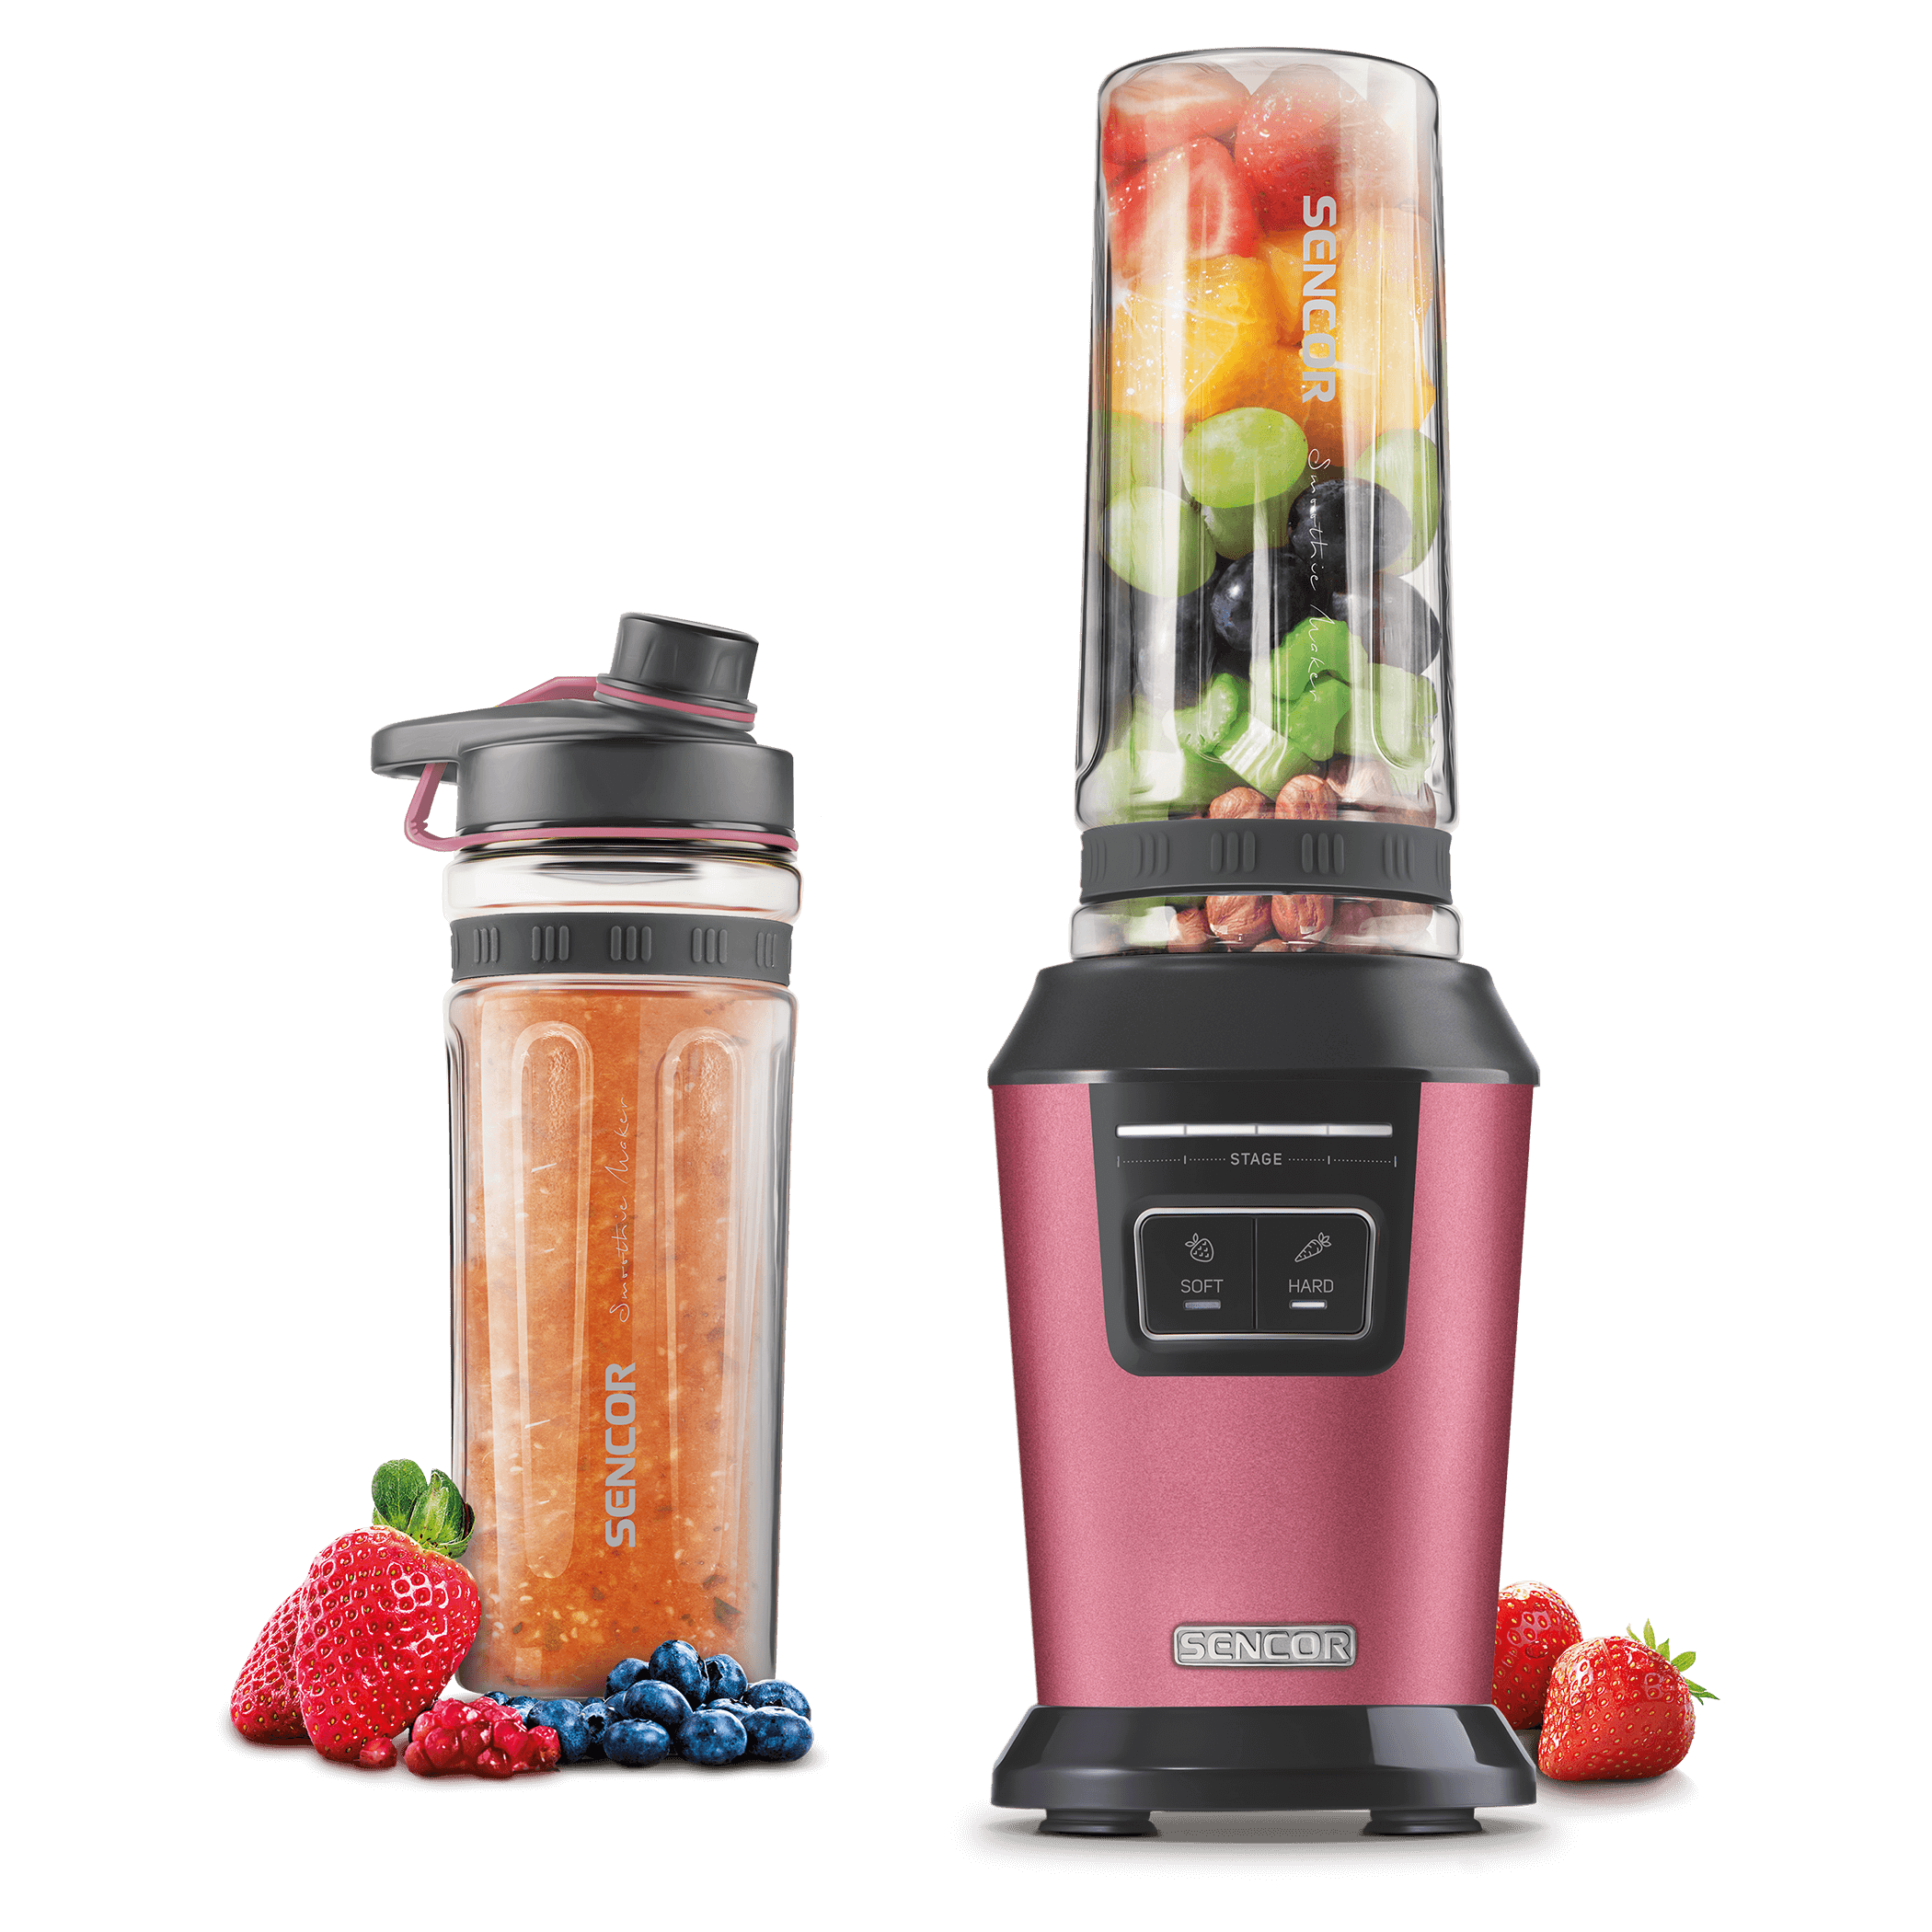 term/fokateg/SBL_7074RD_Smoothie_maker_SENCOR.png